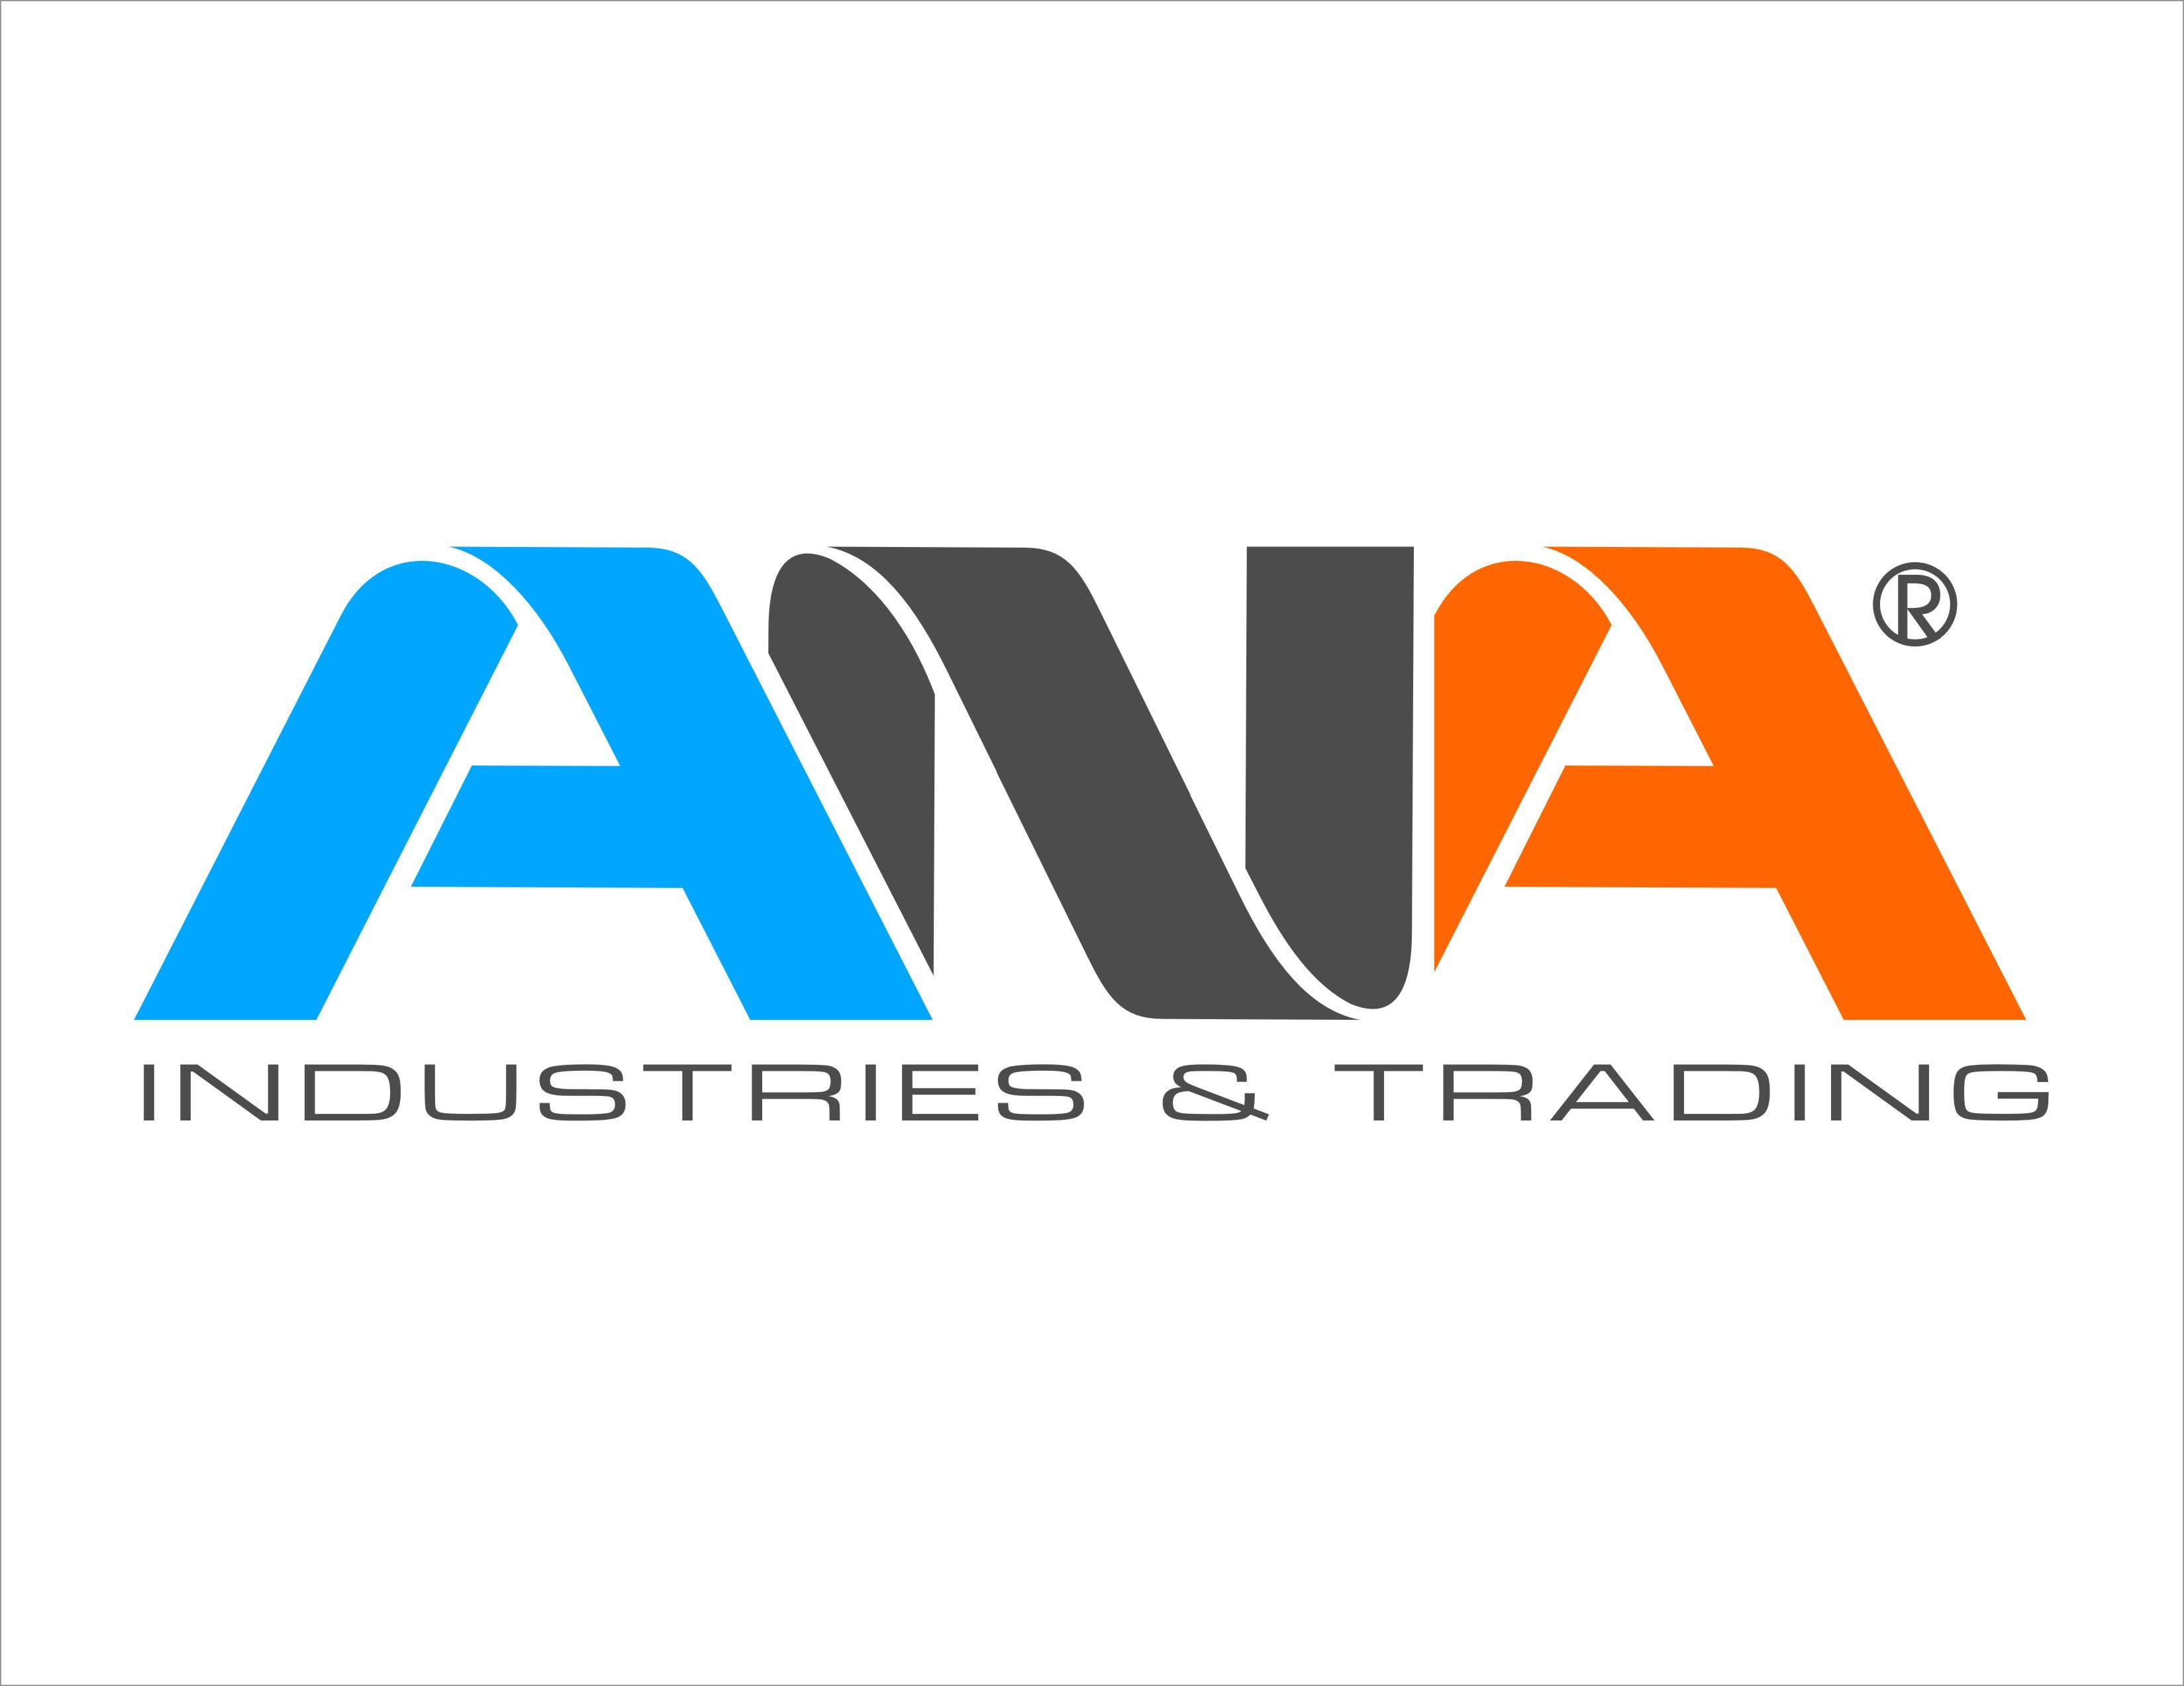 A&A INDUSTRIES & TRADING JSC